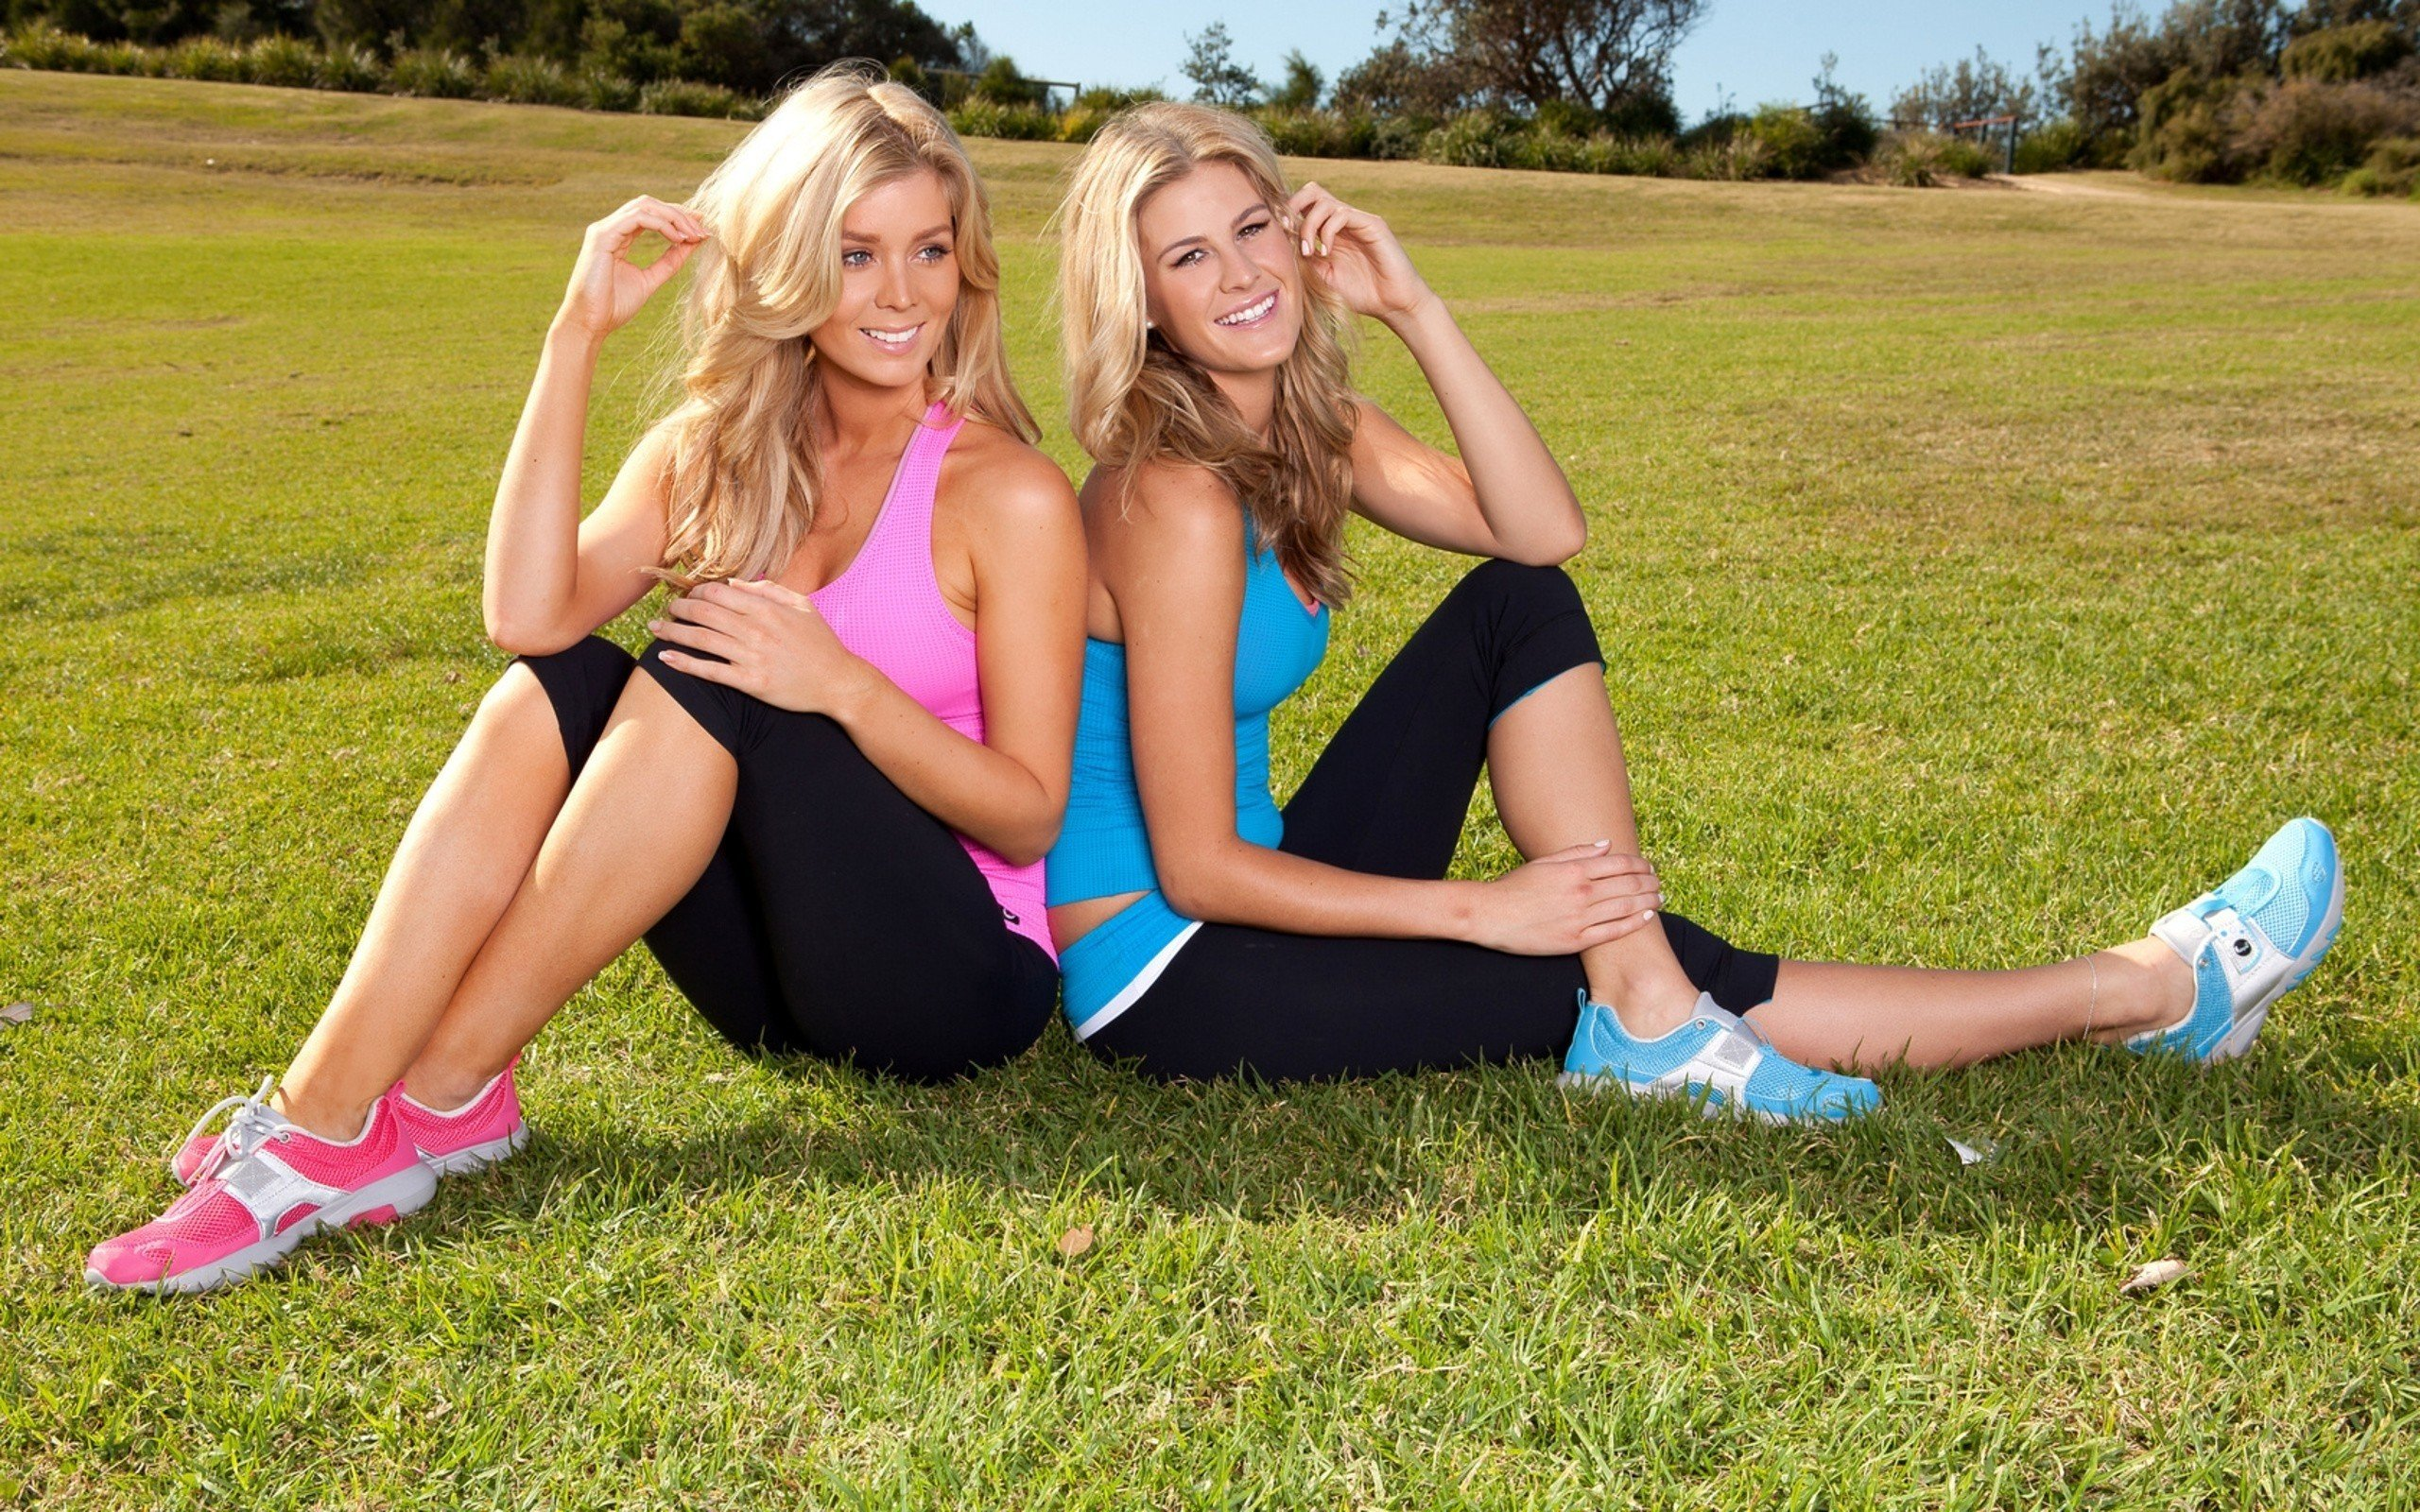 Sheridyn Fisher Kristie McKeon HD Wallpapers Desktop and Mobile 2560x1600